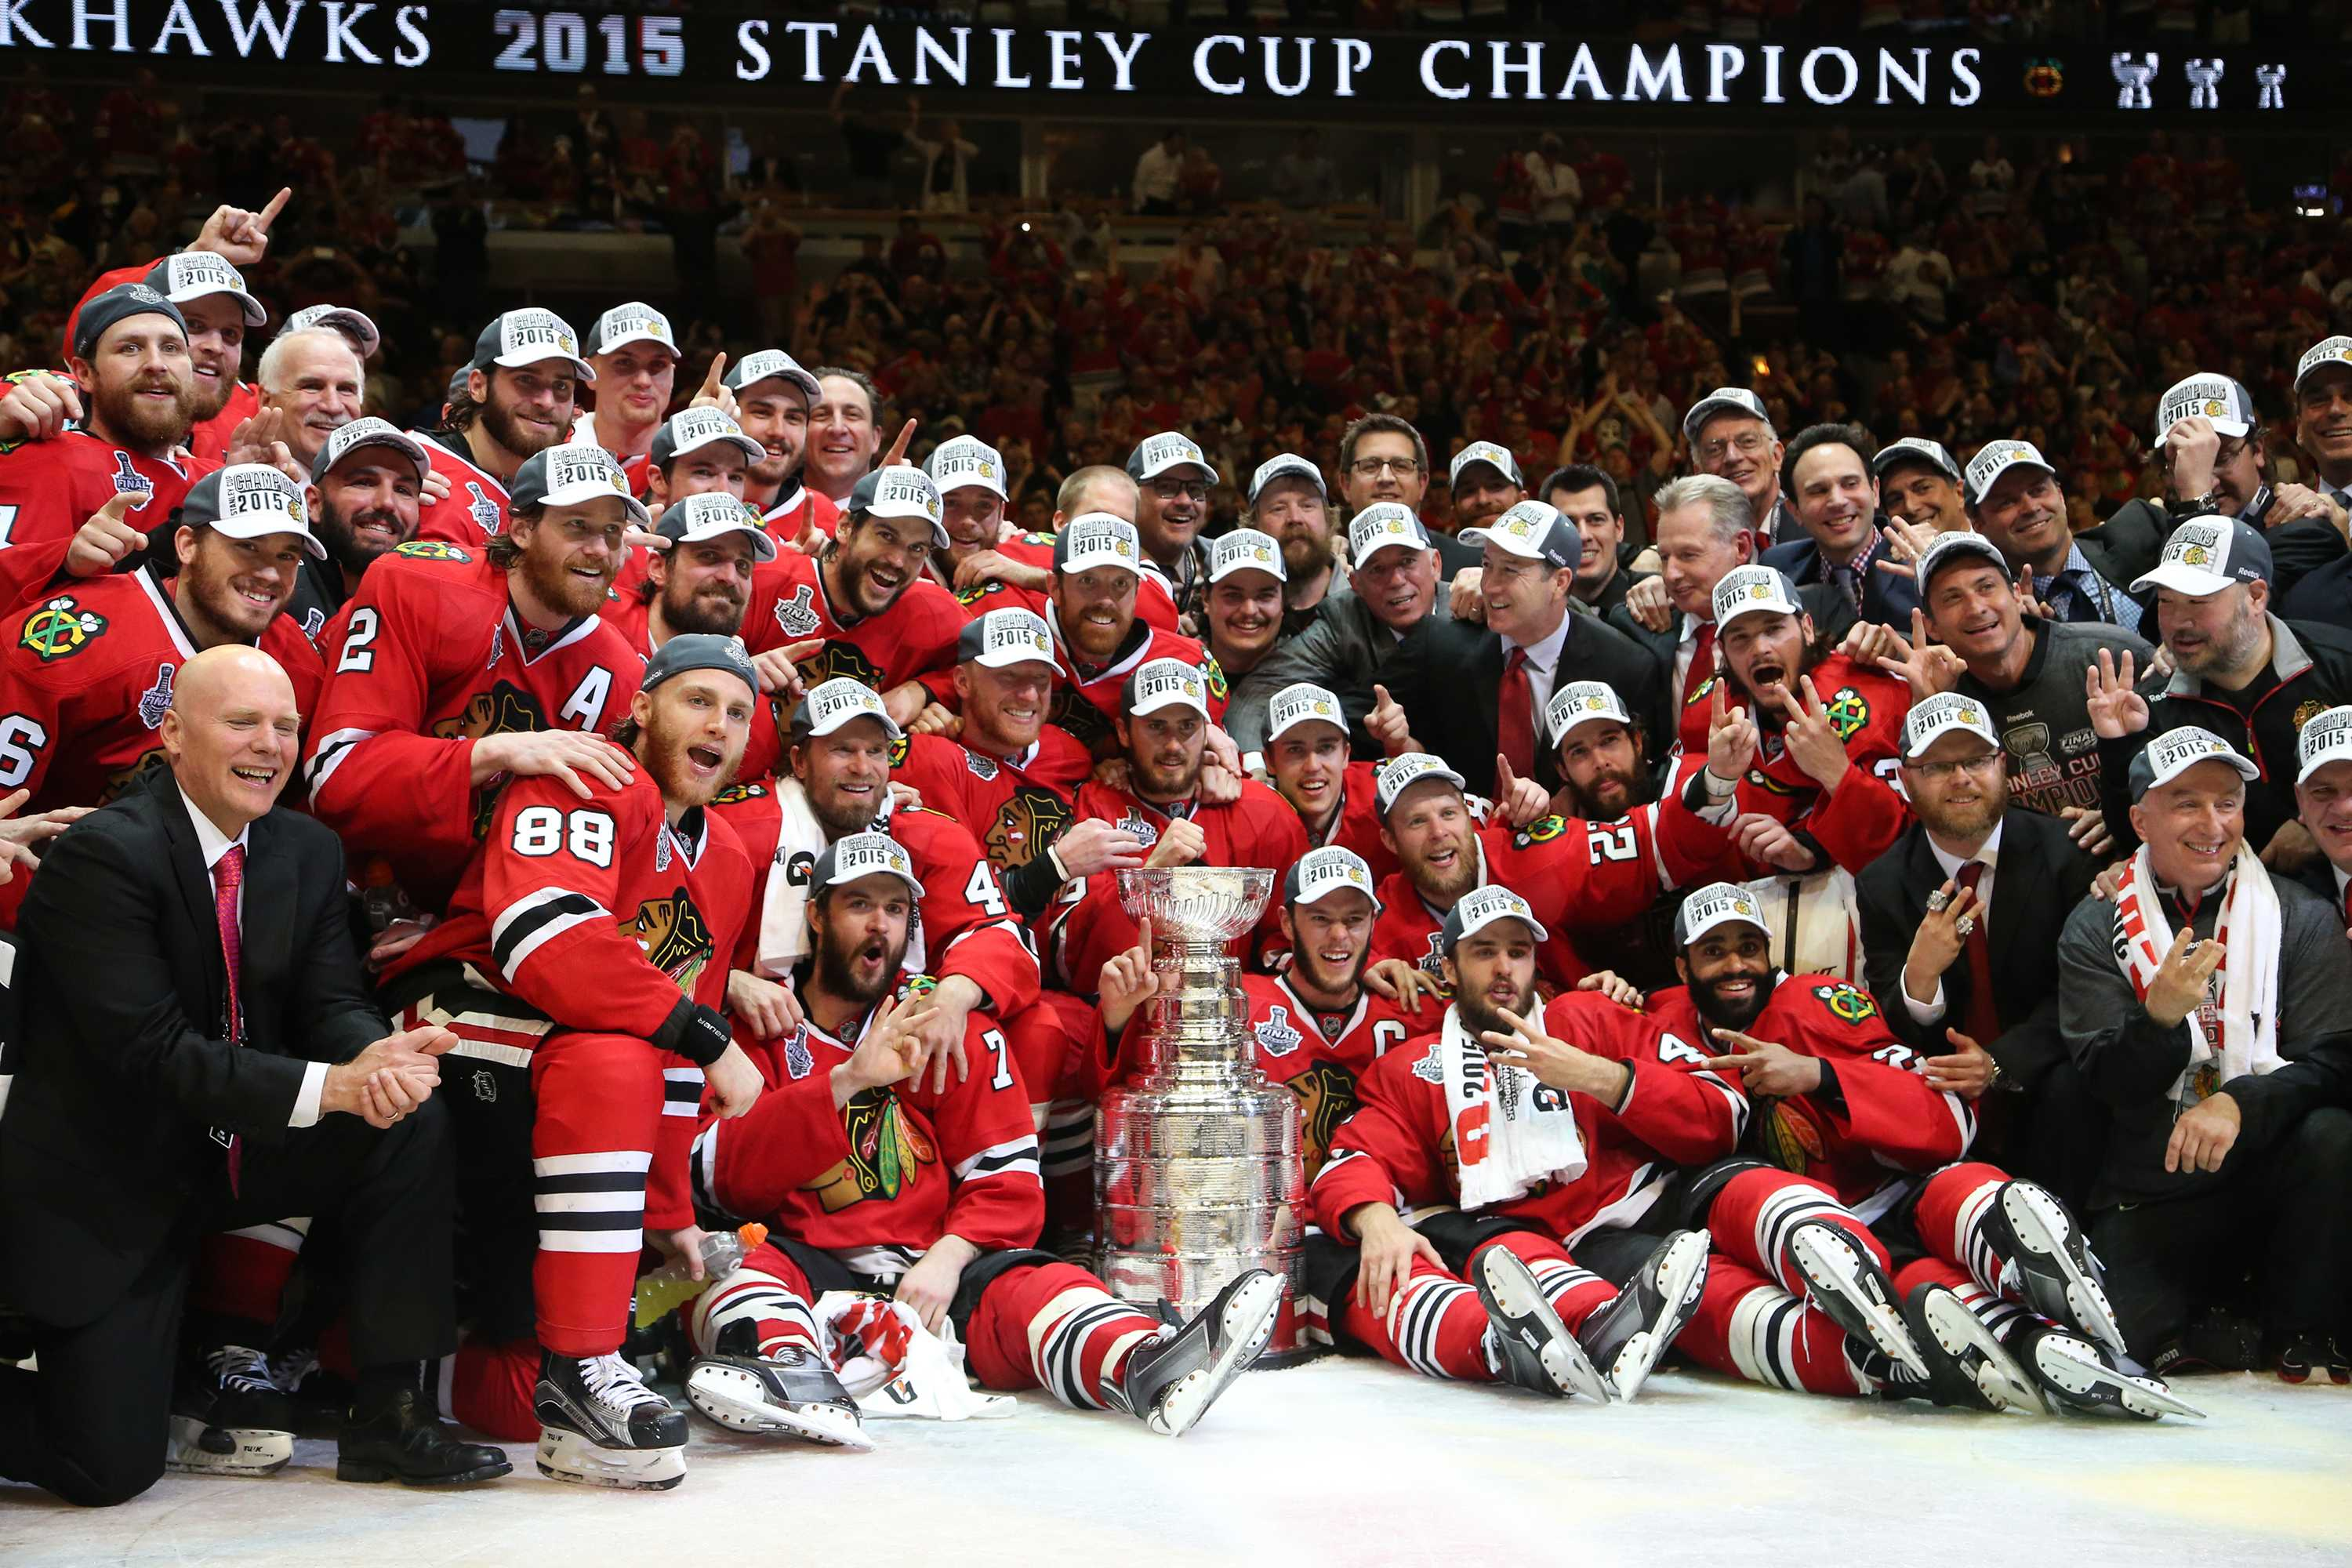 The+Chicago+Blackhawks+celebrate+after+defeating+the+Tampa+Bay+Lightning+in+Game+6+of+the+Stanley+Cup+Final+on+Monday%2C+June+15%2C+2015%2C+at+the+United+Center+in+Chicago.+%28Brian+Cassella%2FChicago+Tribune%2FTNS%29